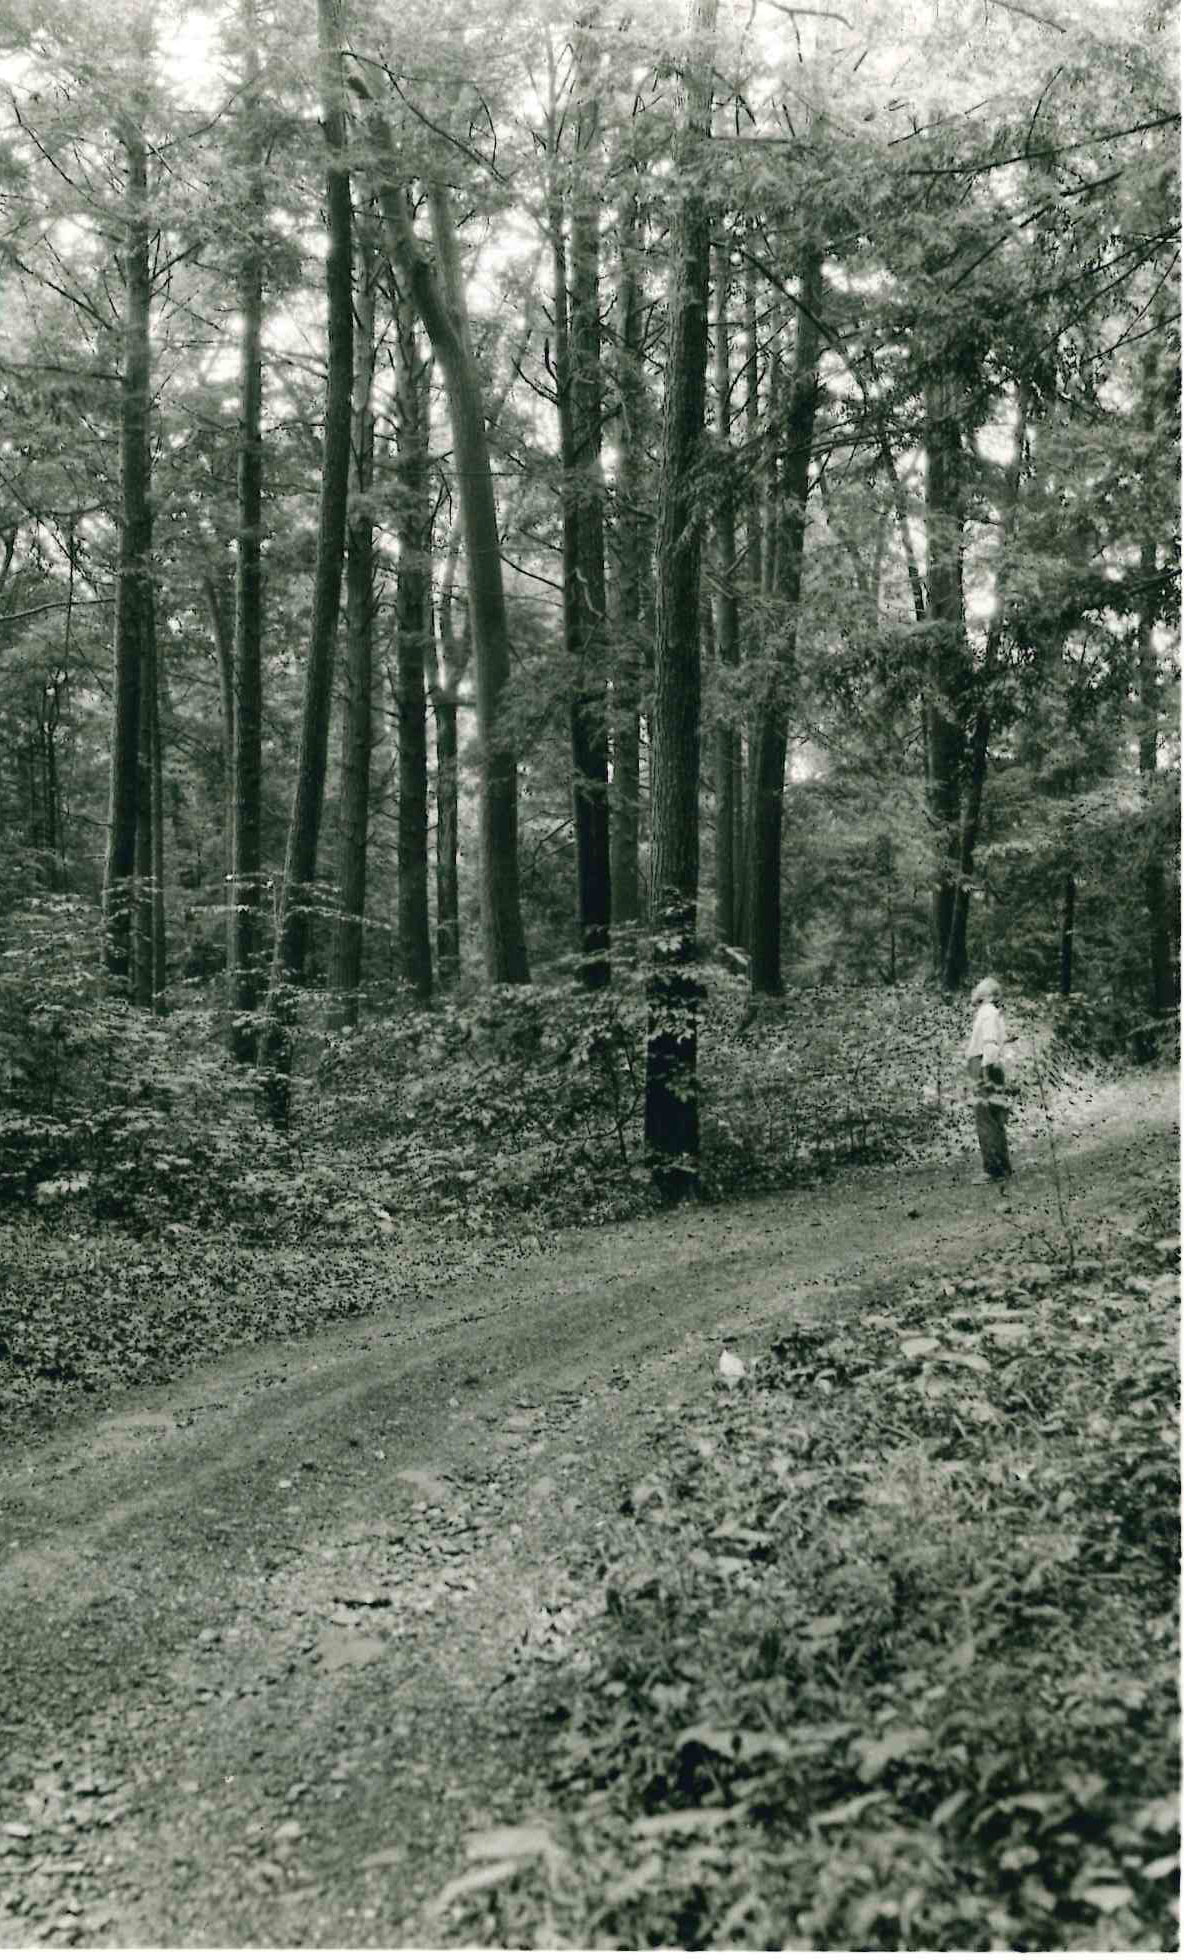 One of the several miles of woods roads which FDR loved to ride on his vacation trips to Hyde Park.